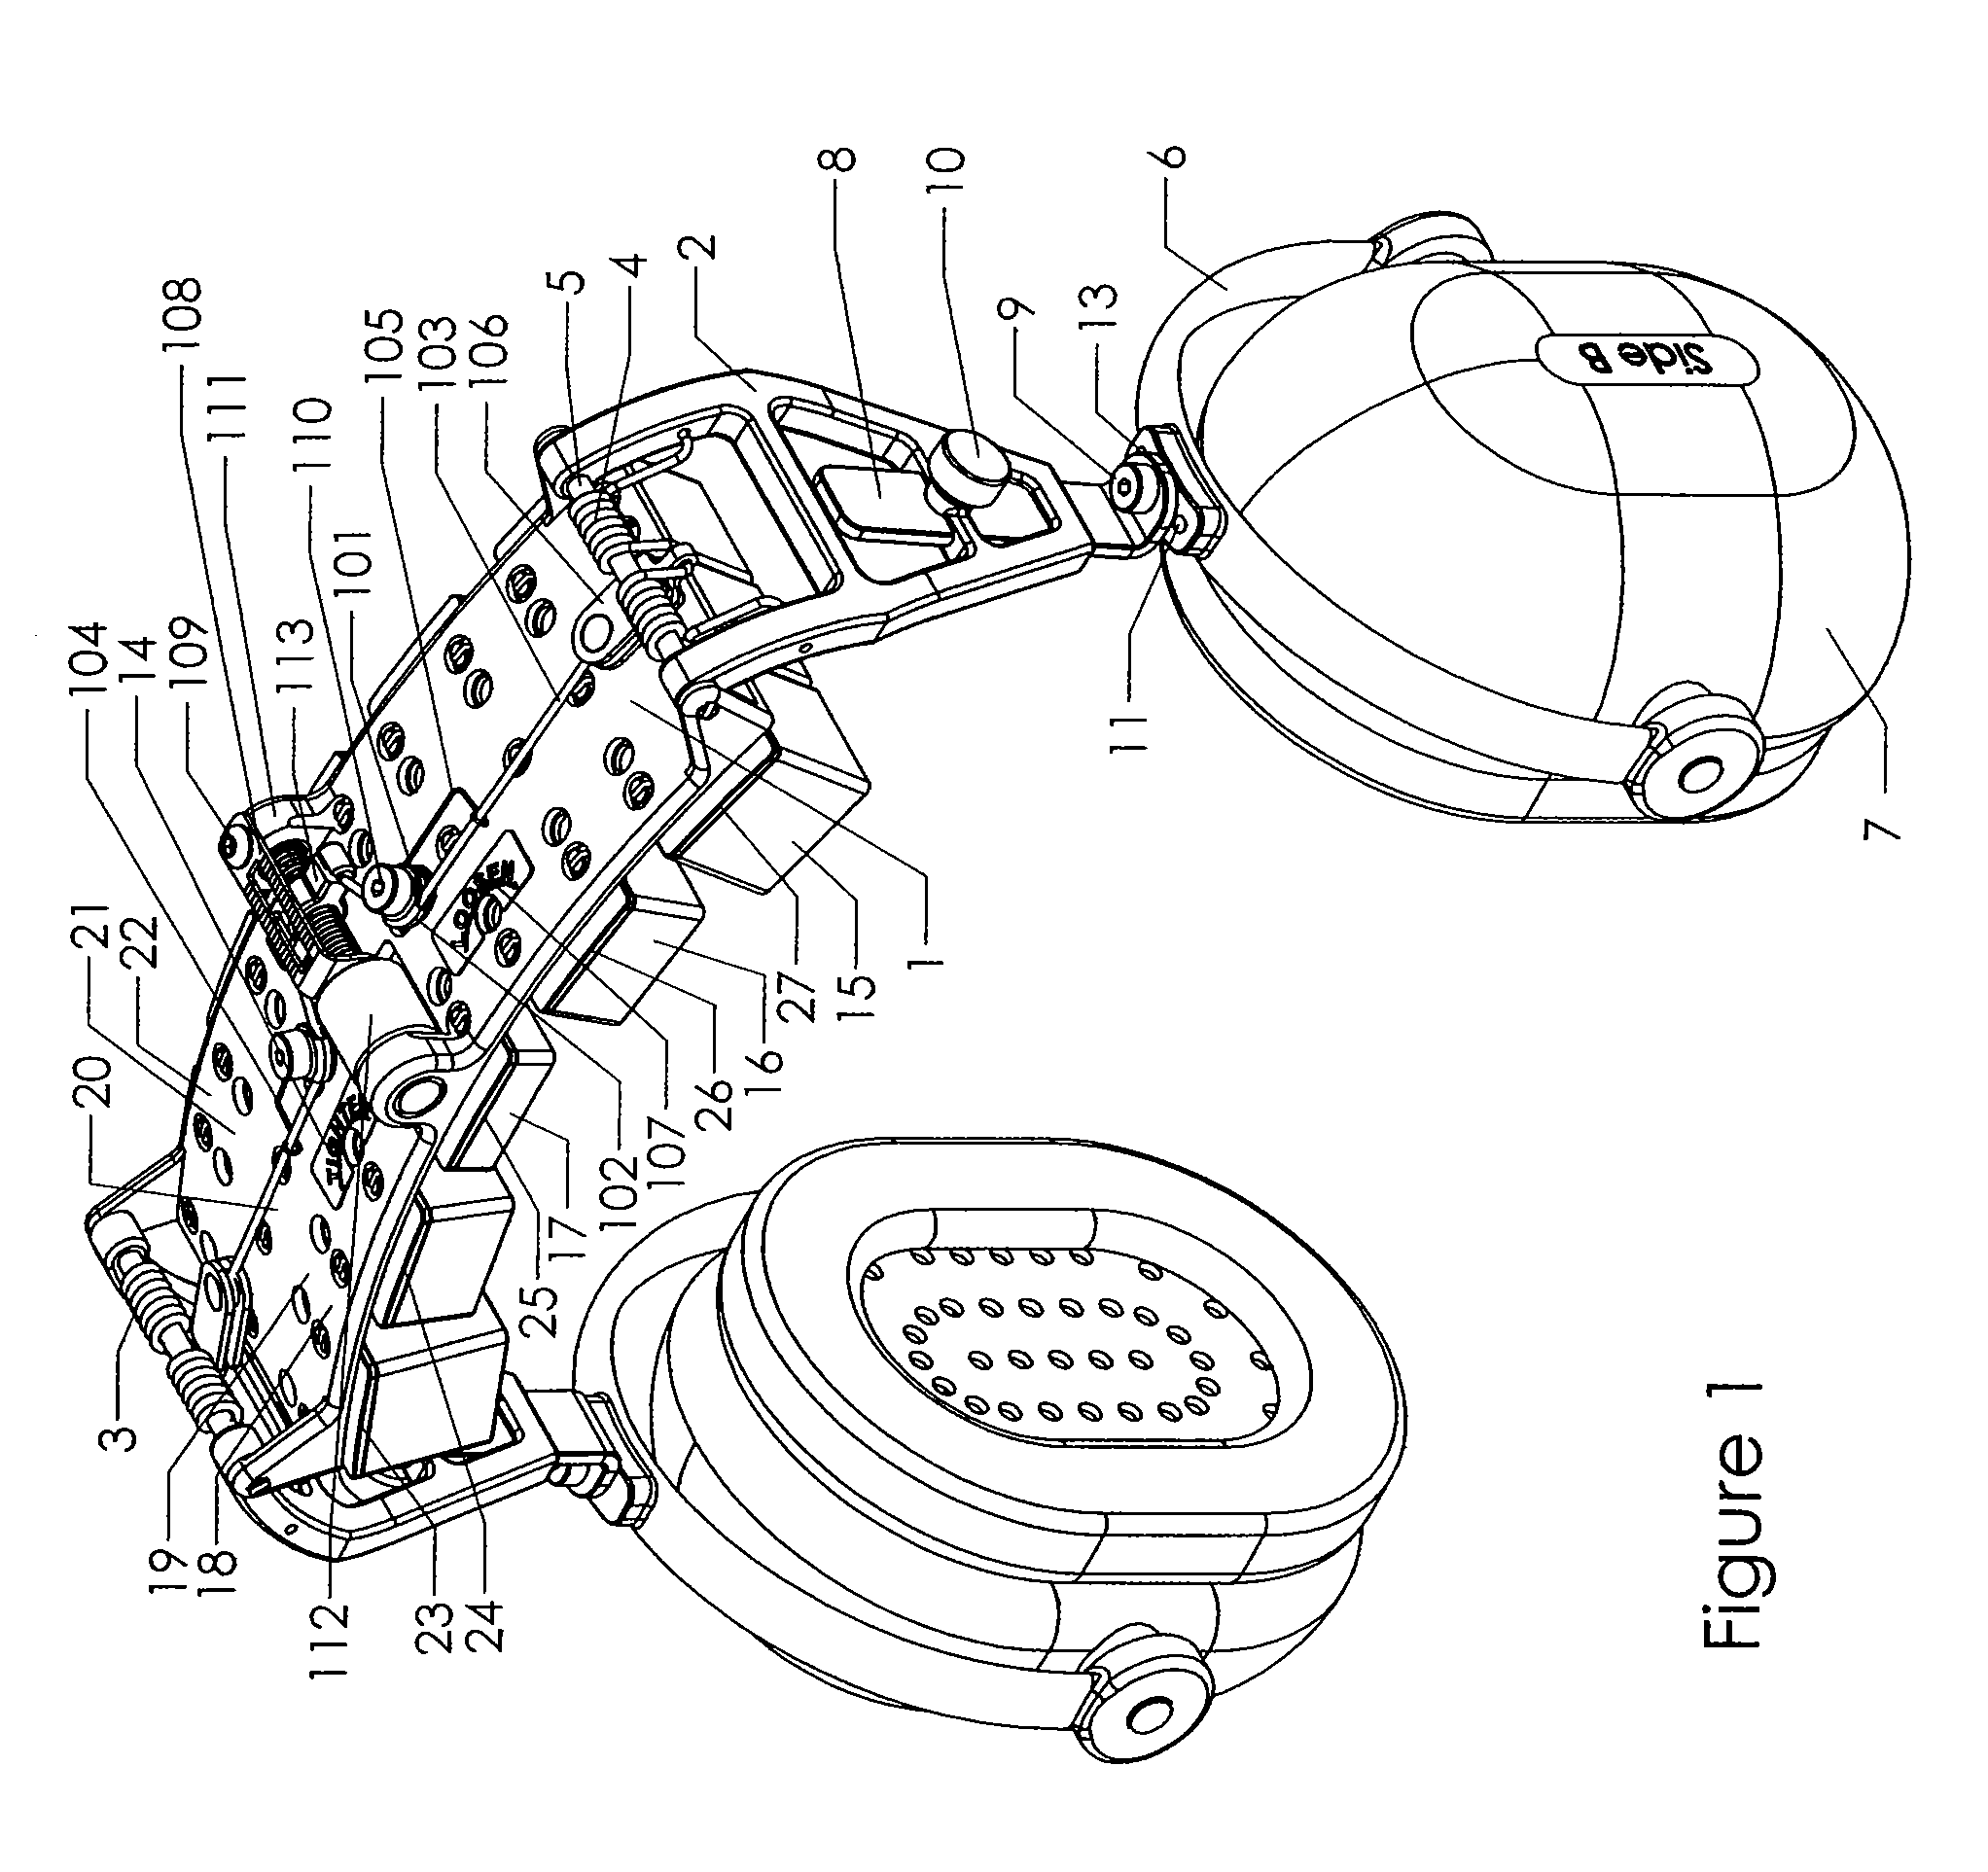 patent us8050444 - adjustable mechanism for improving headset comfort